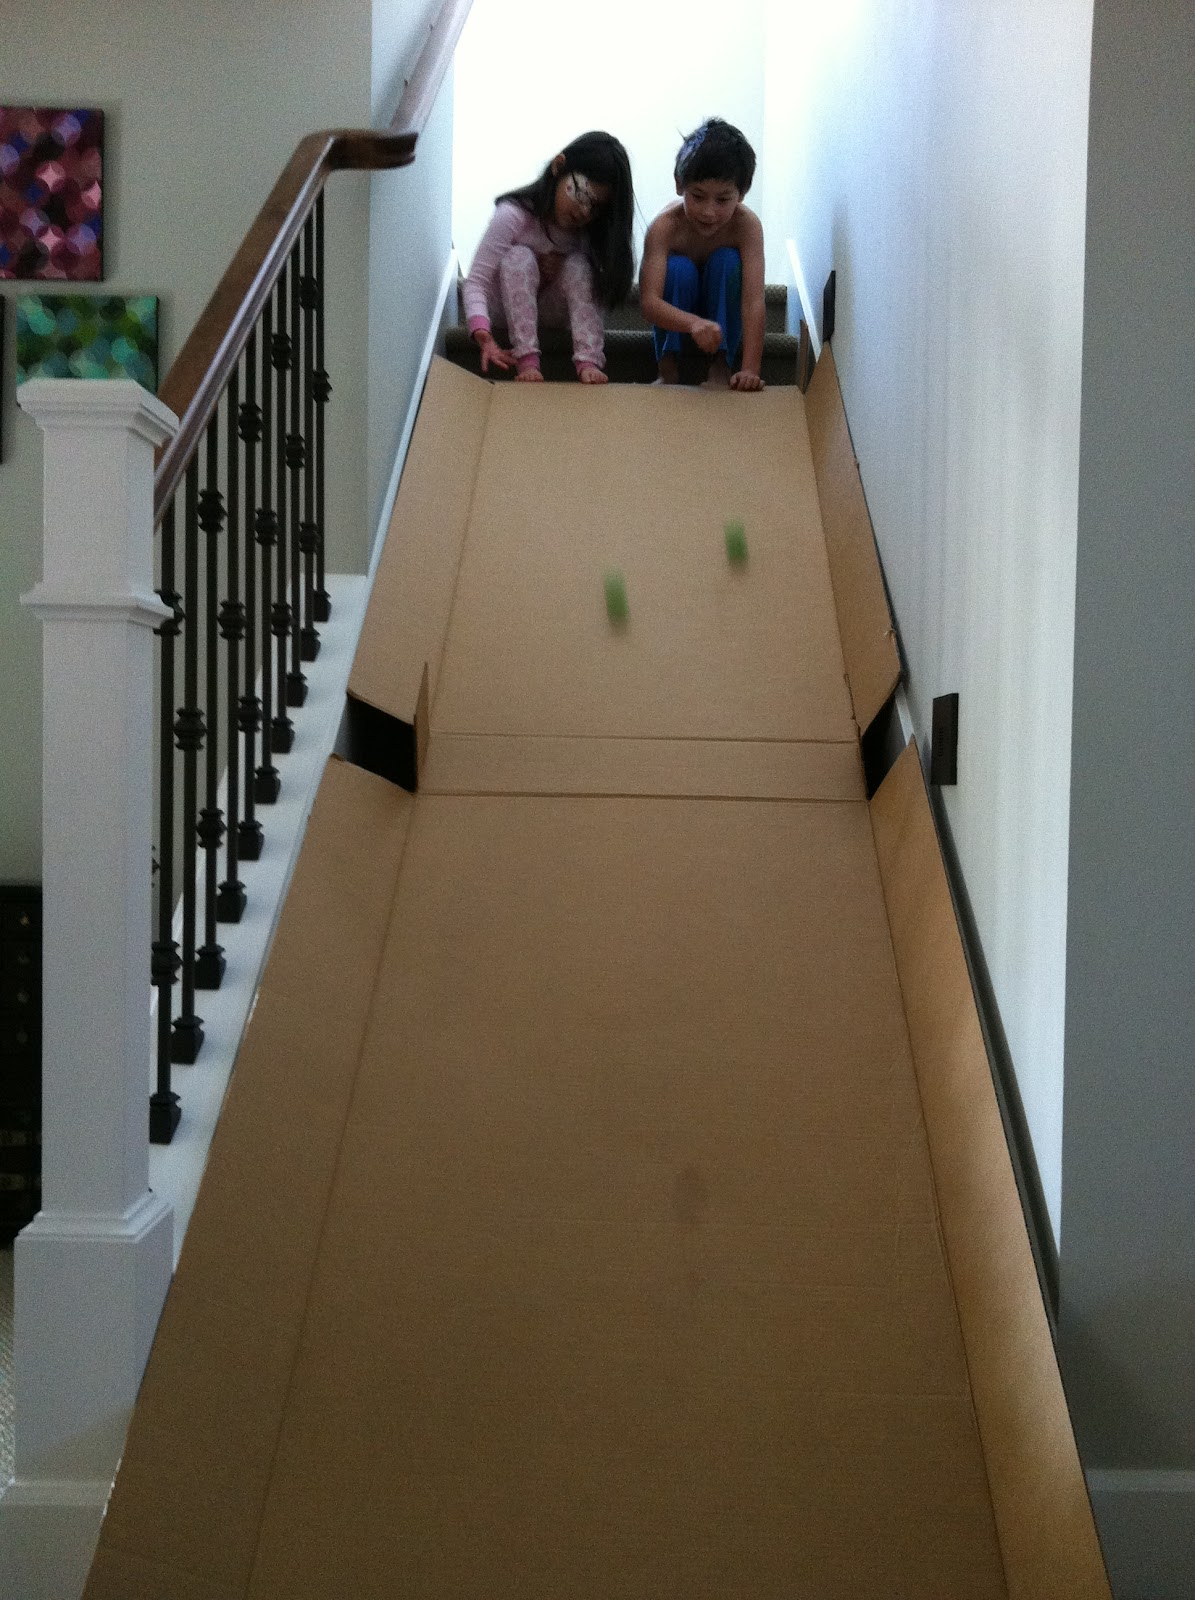 The Contemplative Creative Cardboard Slide